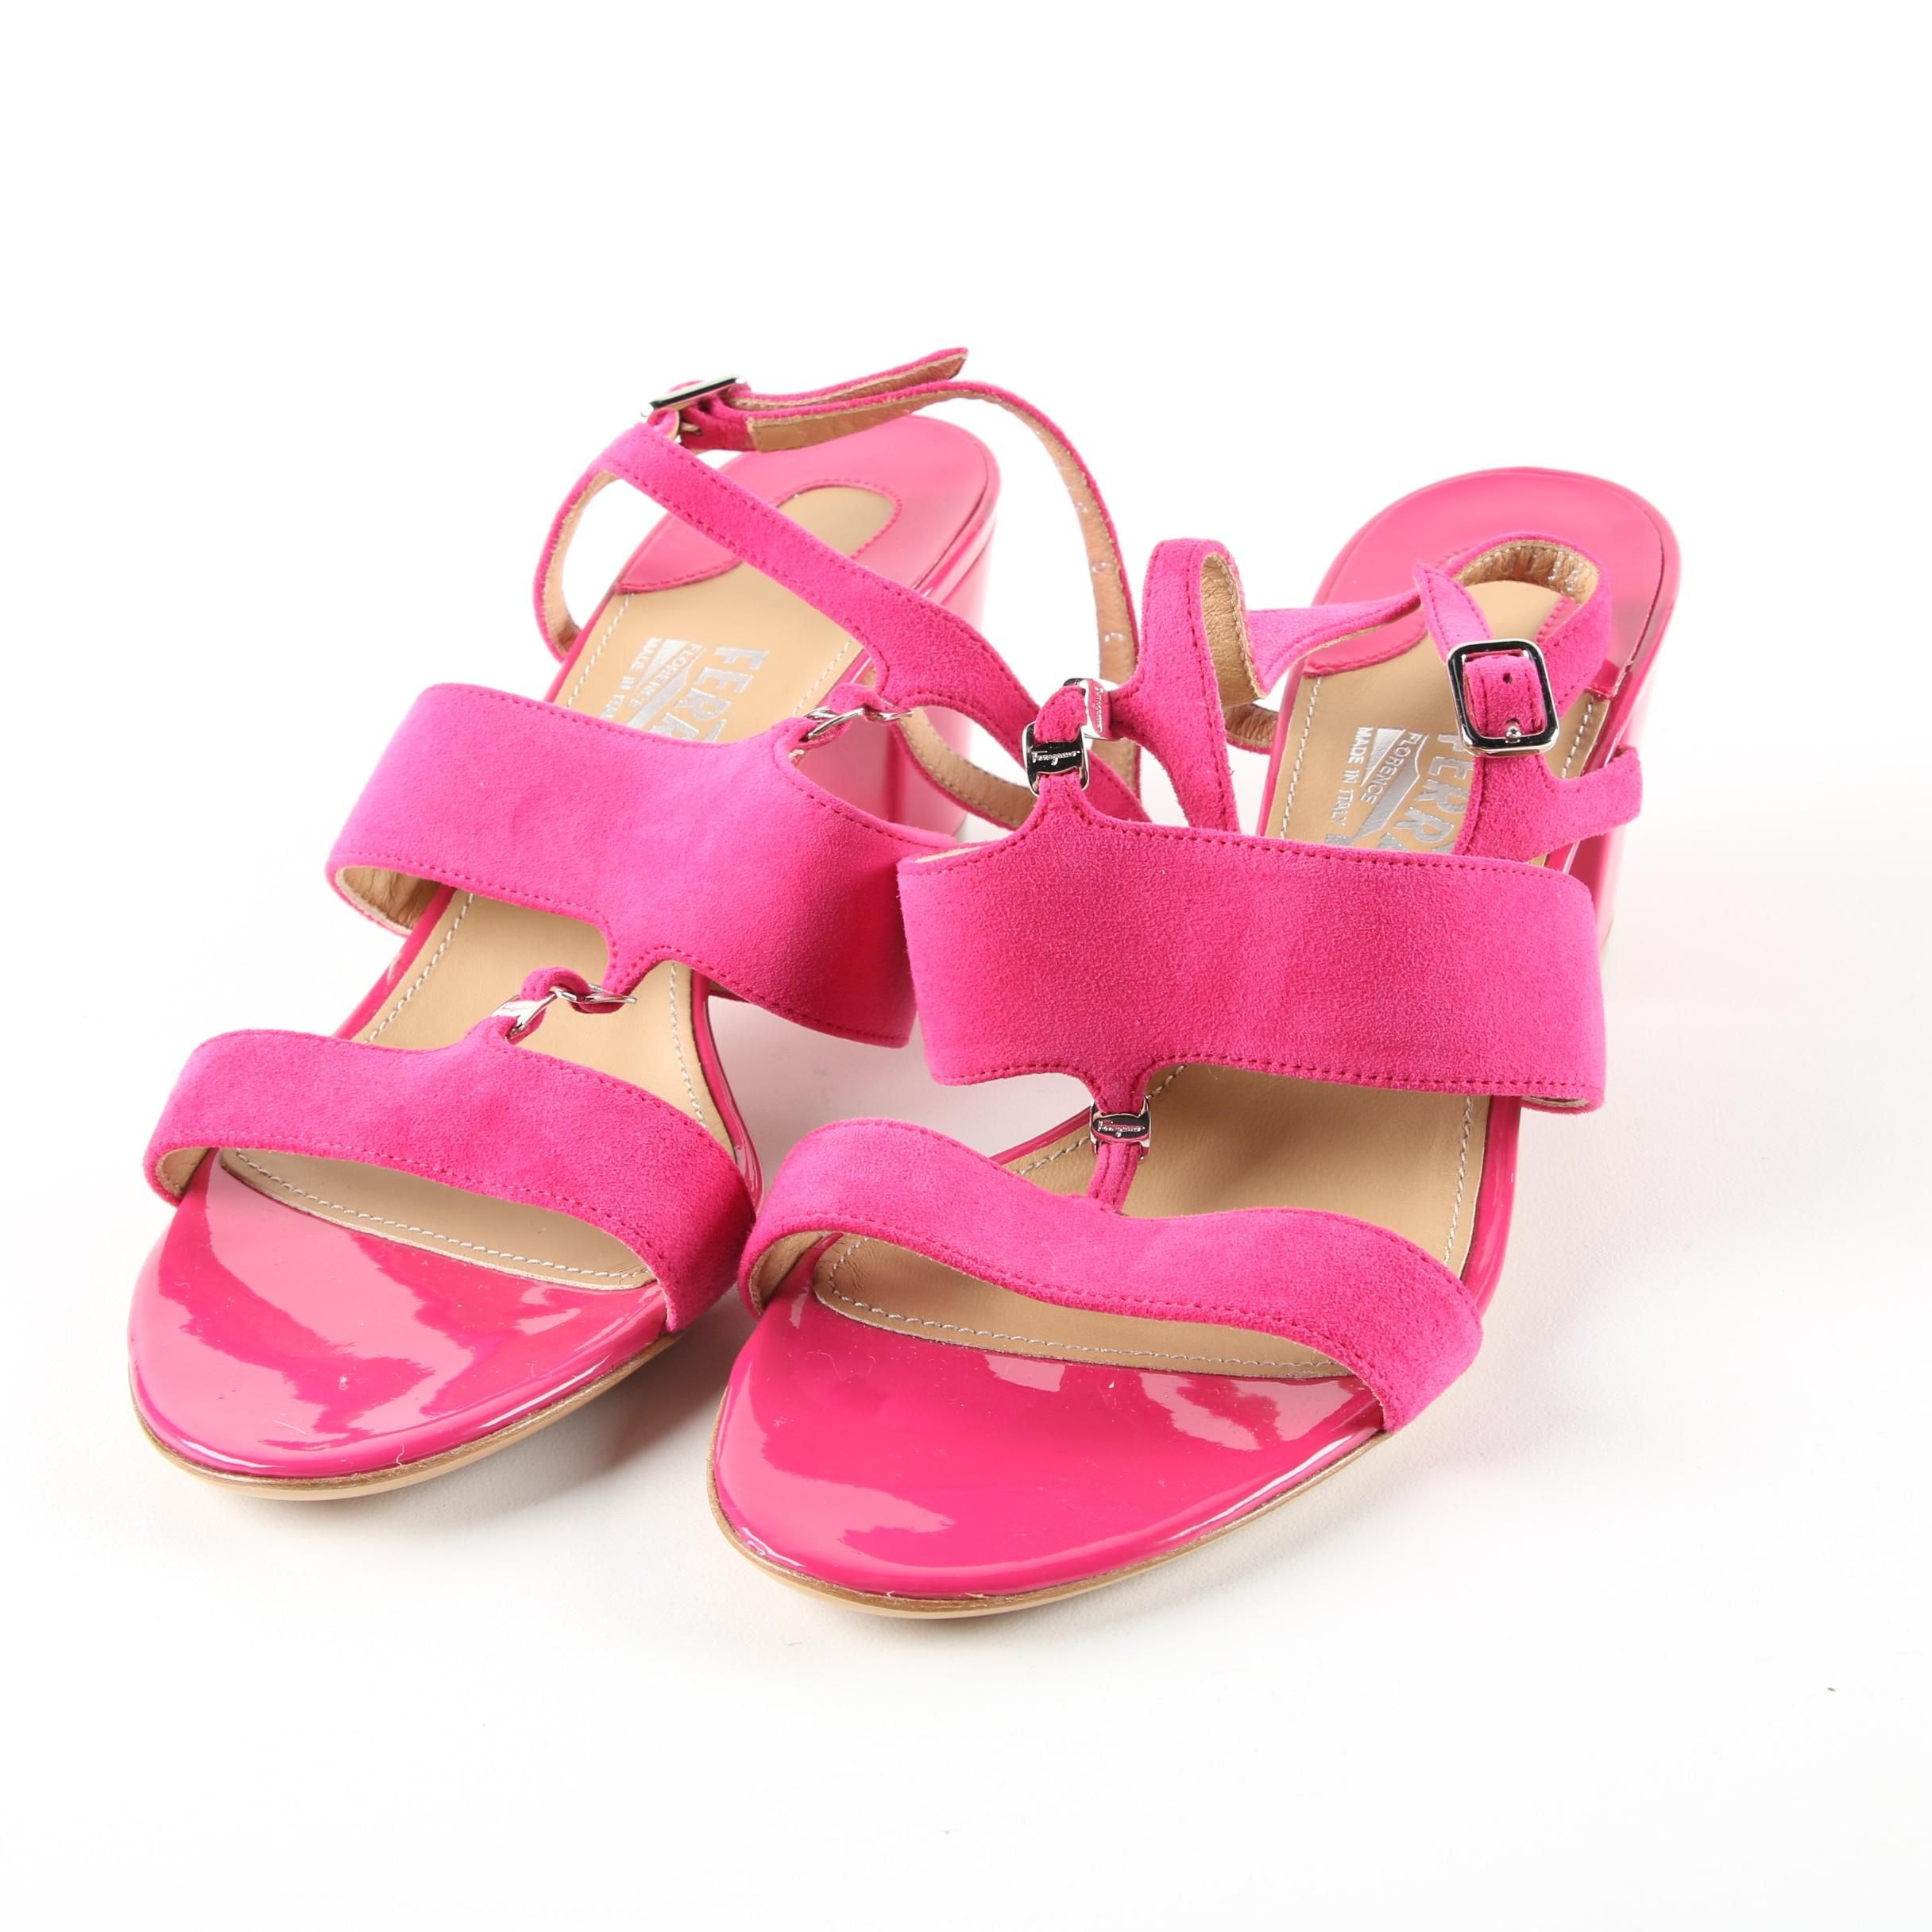 Salvatore Ferragamo Hot Pink Patent Leather and Suede High-Heeled Dress Sandals